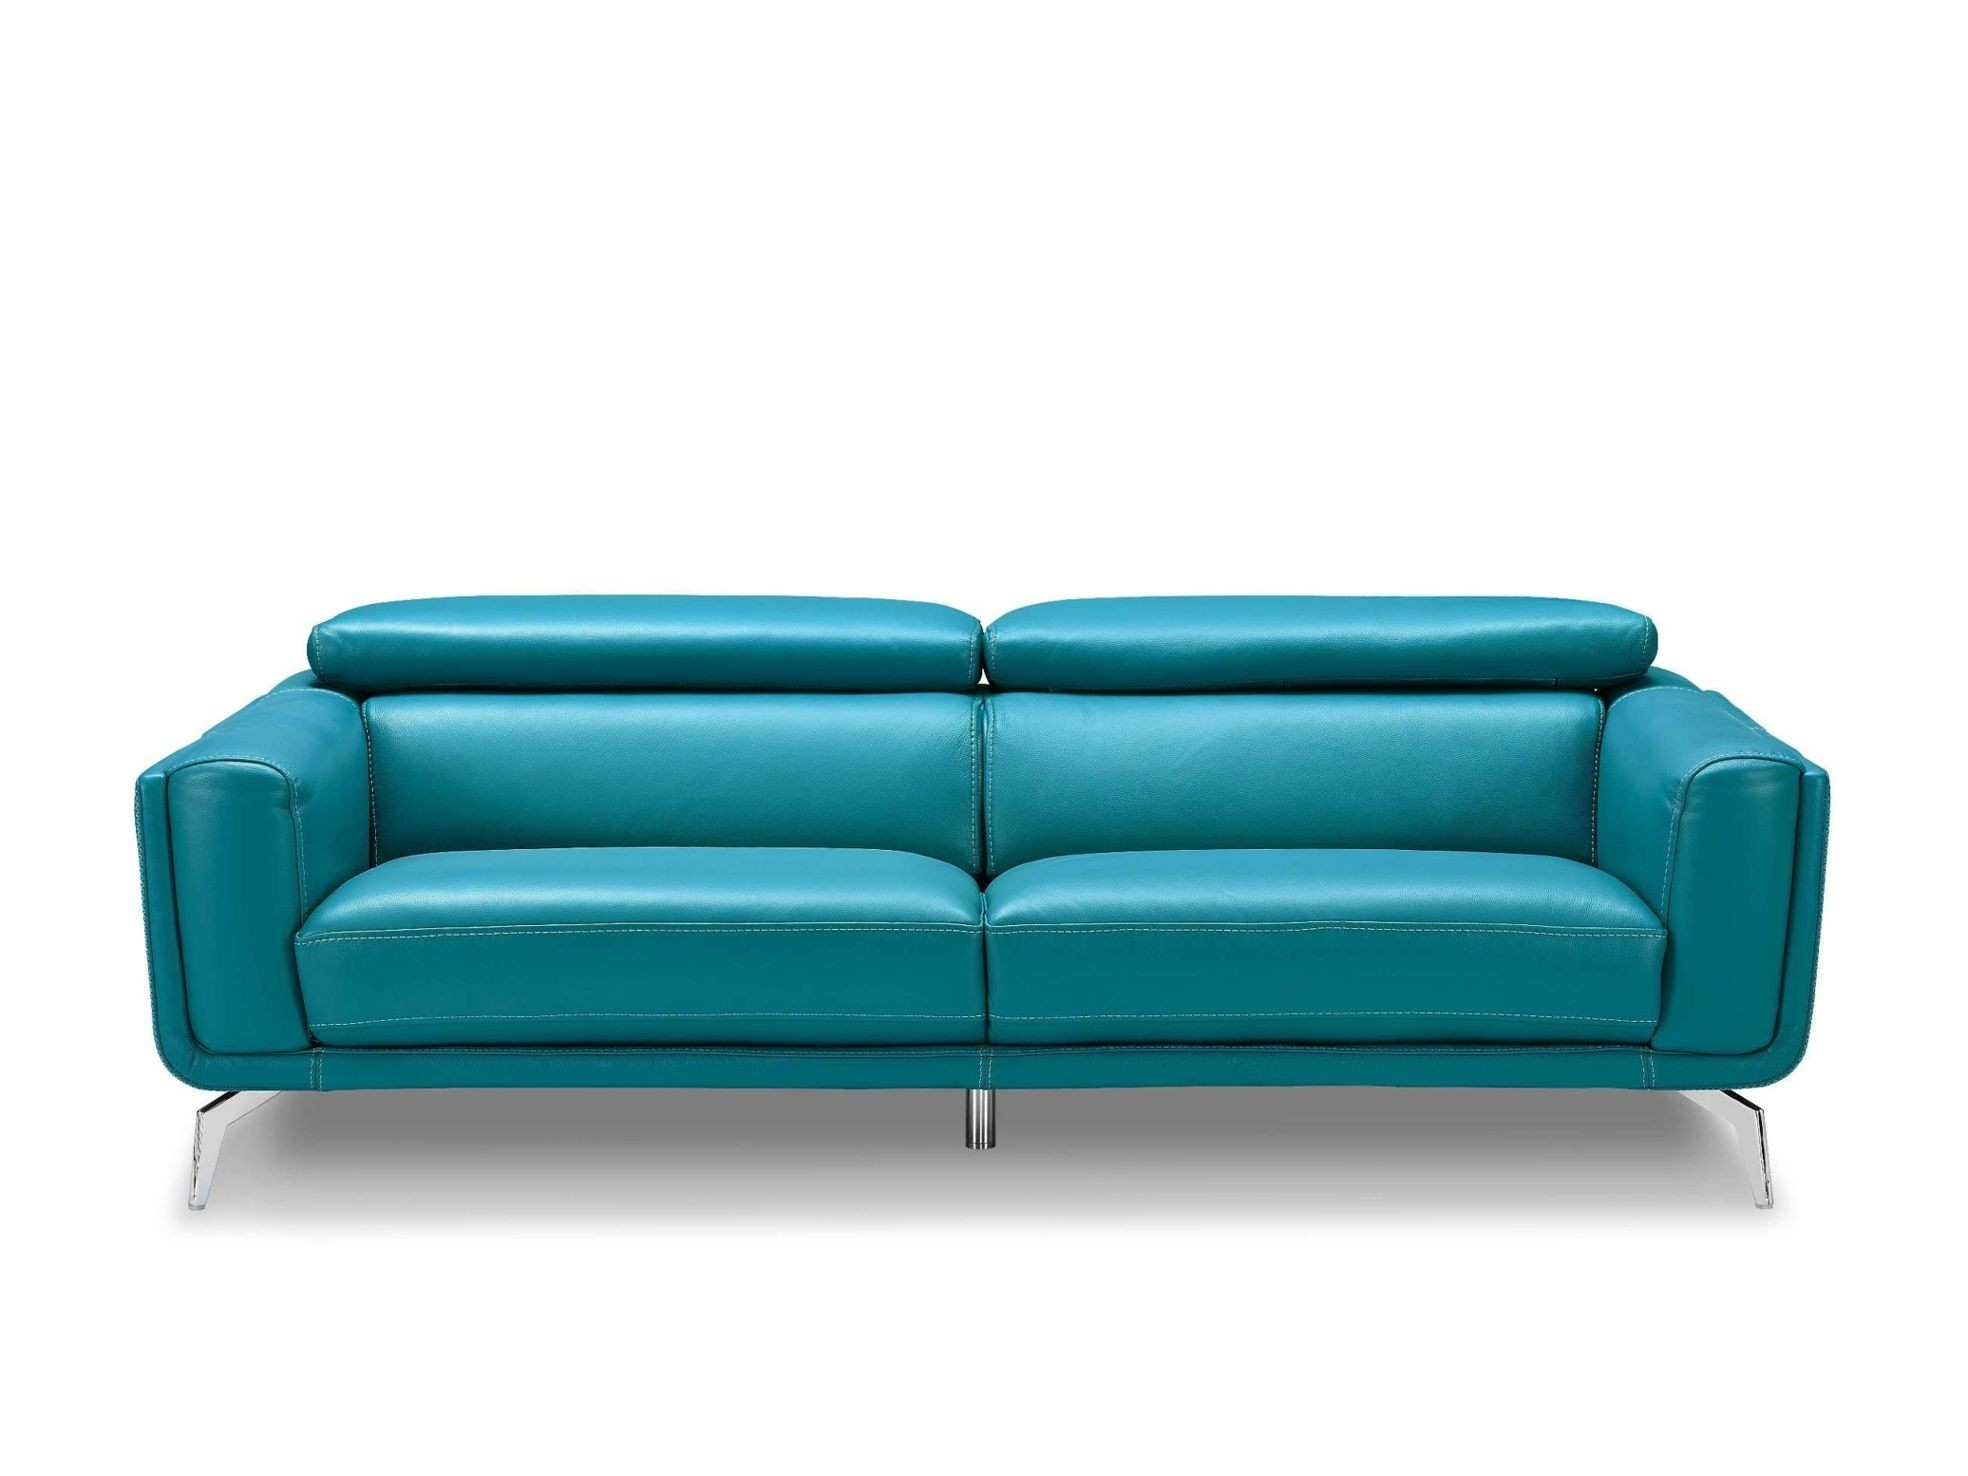 Well Known High Point Nc Sectional Sofas Regarding Sofa Modernr Ideas For Living Room Hupehome Contemporary Furniture (View 18 of 20)